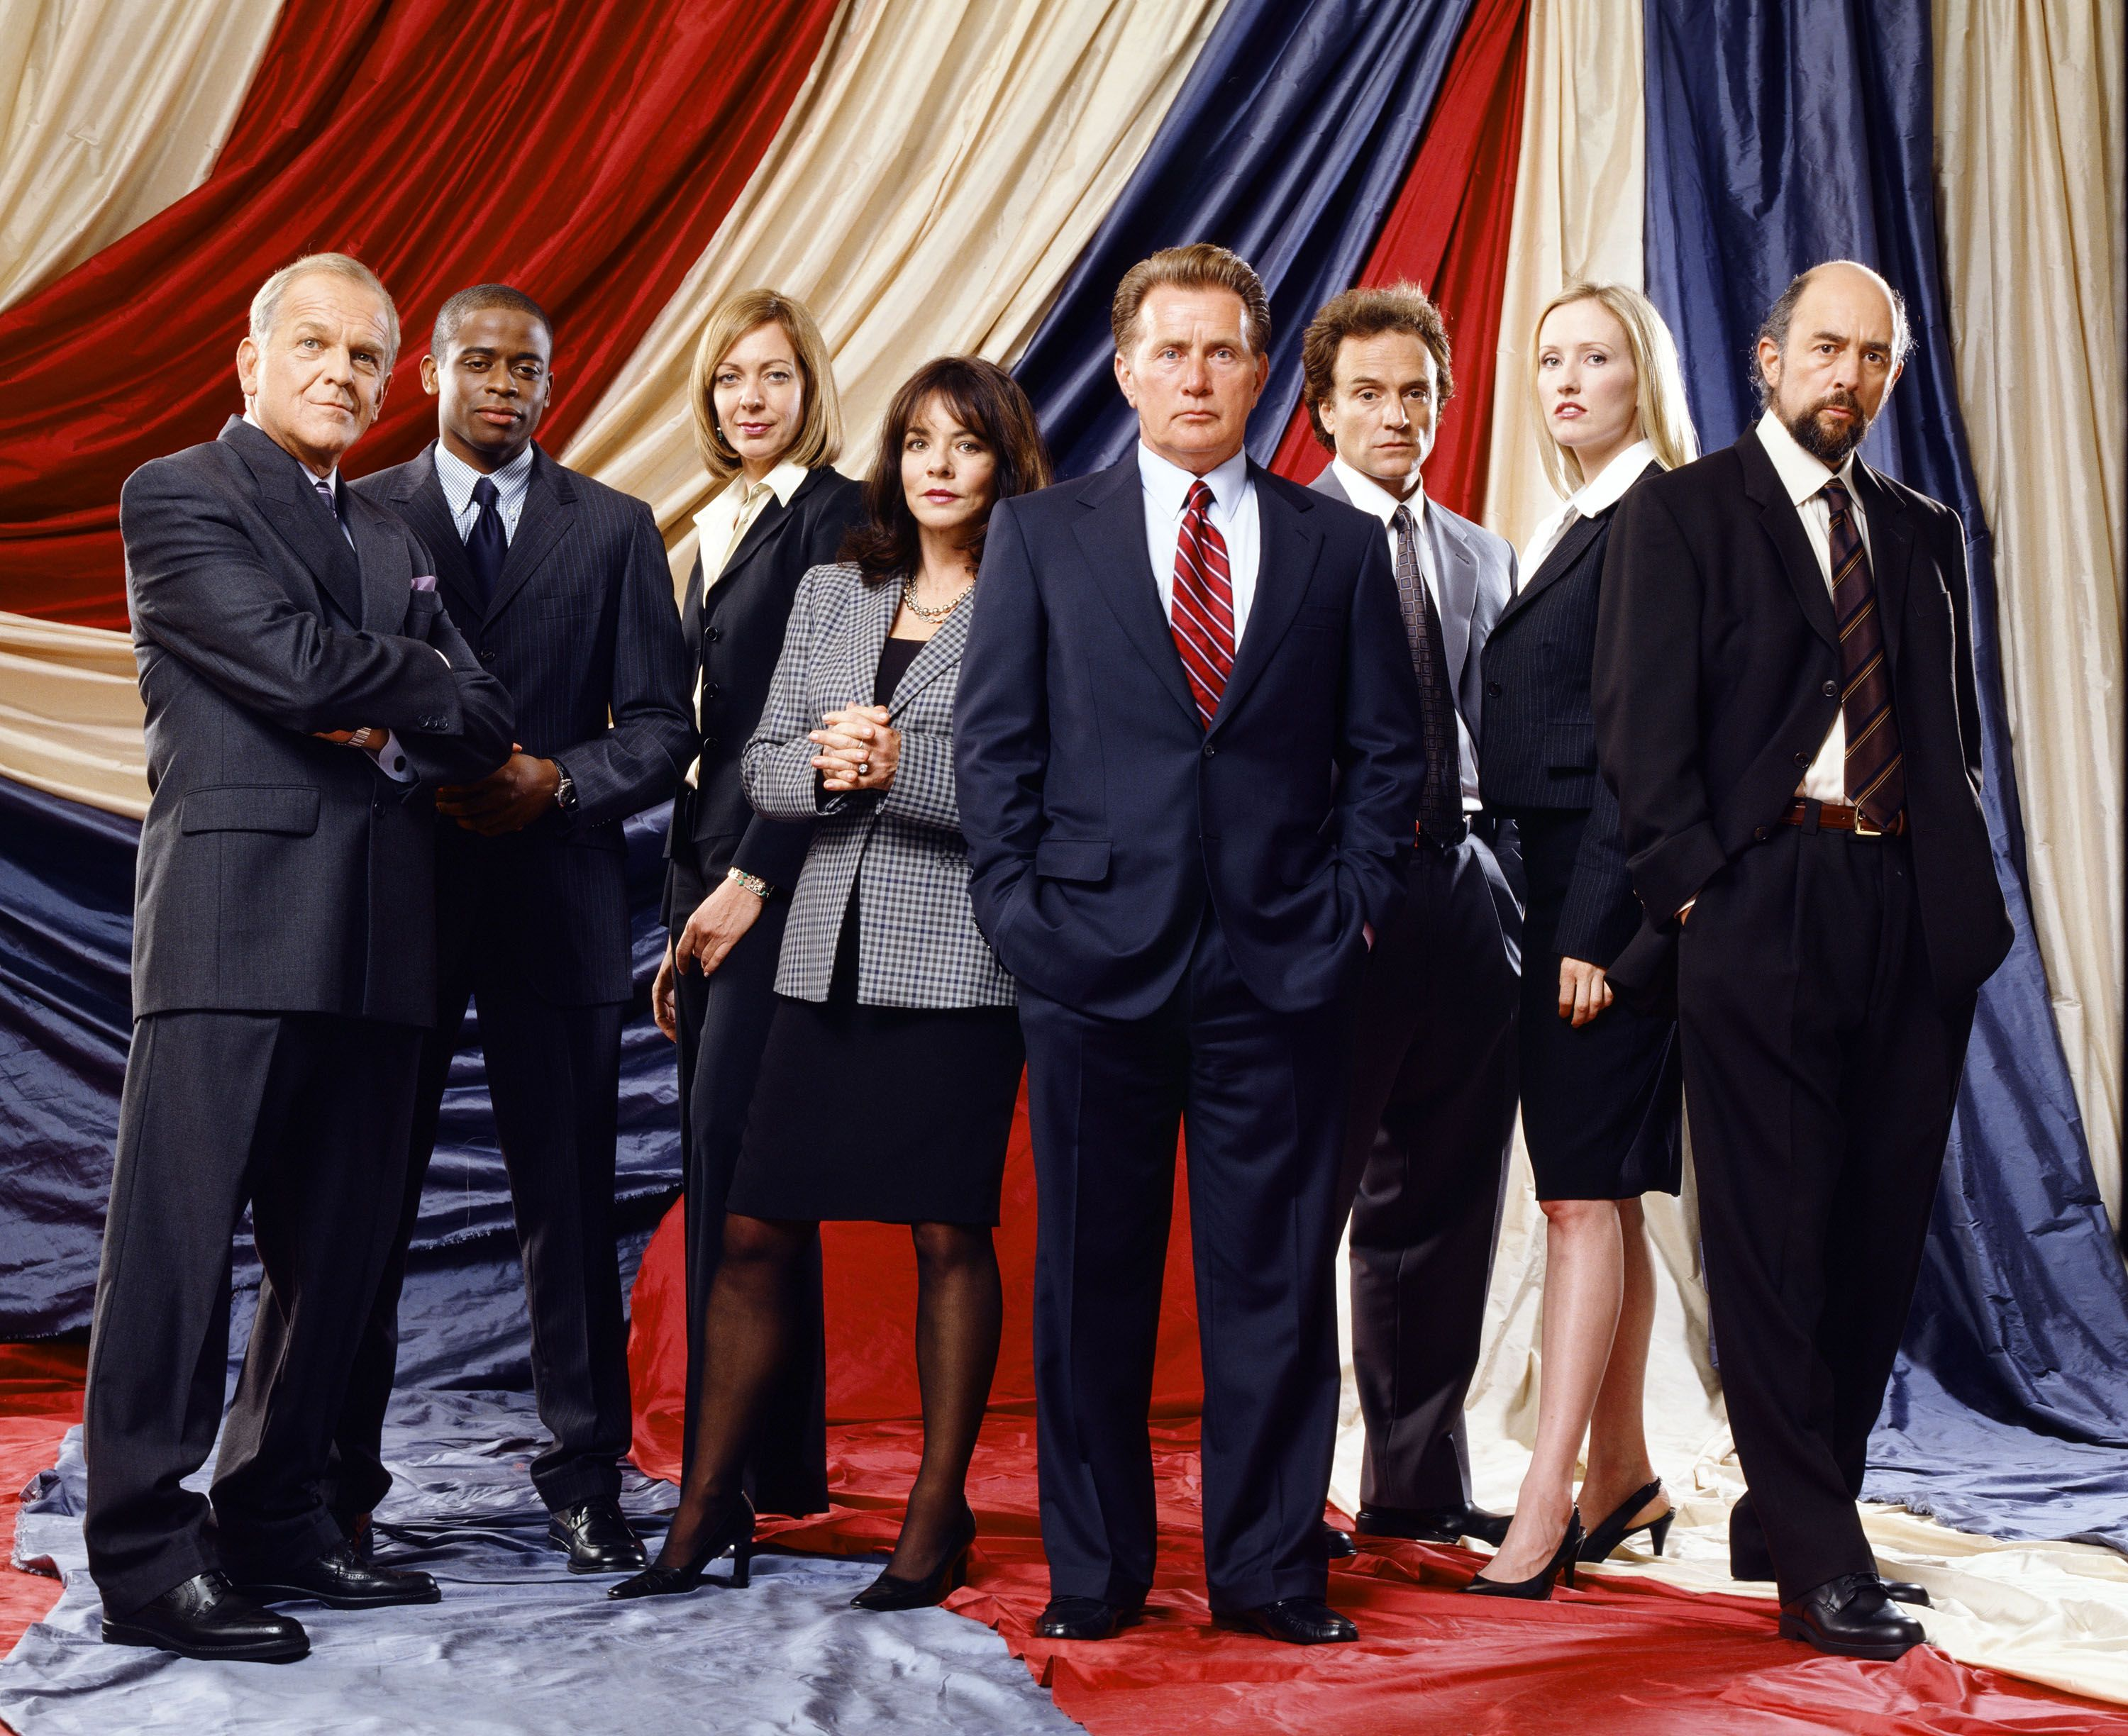 The Cast of The West Wing, Then and Now